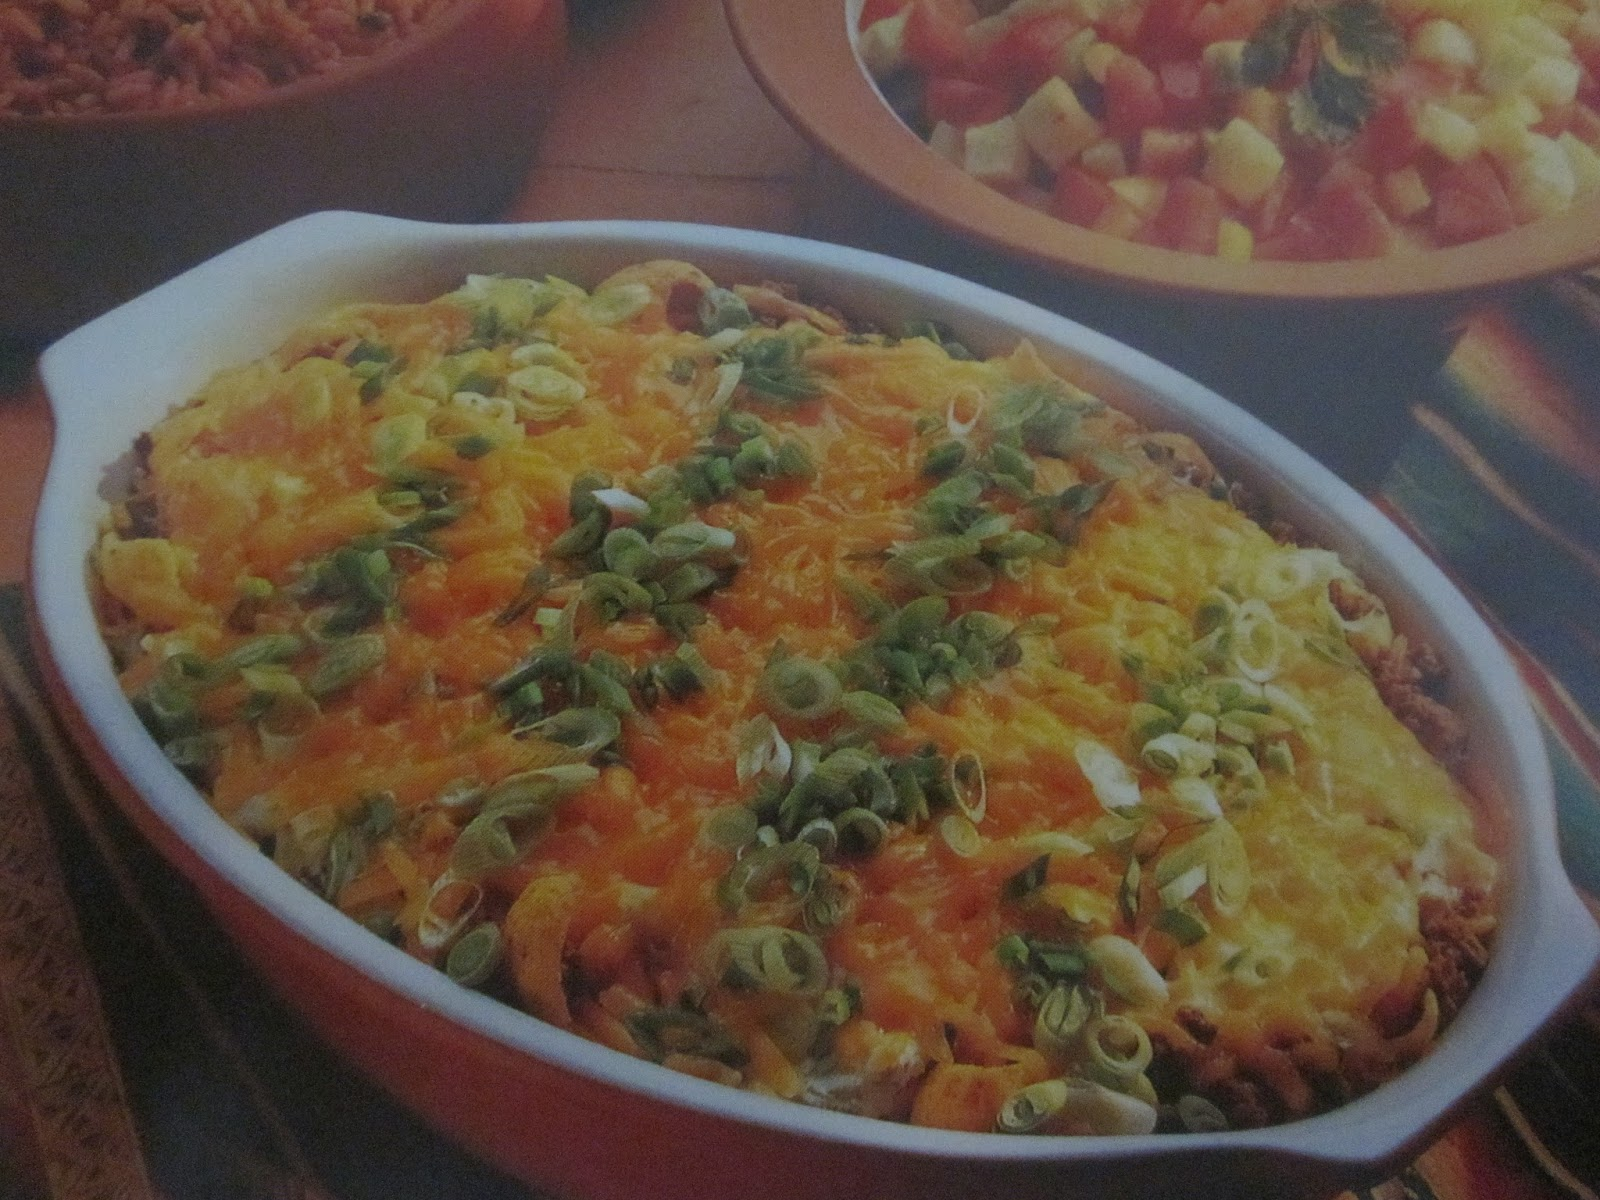 QUICK FIX RECIPES: SANTA FE CASSEROLE